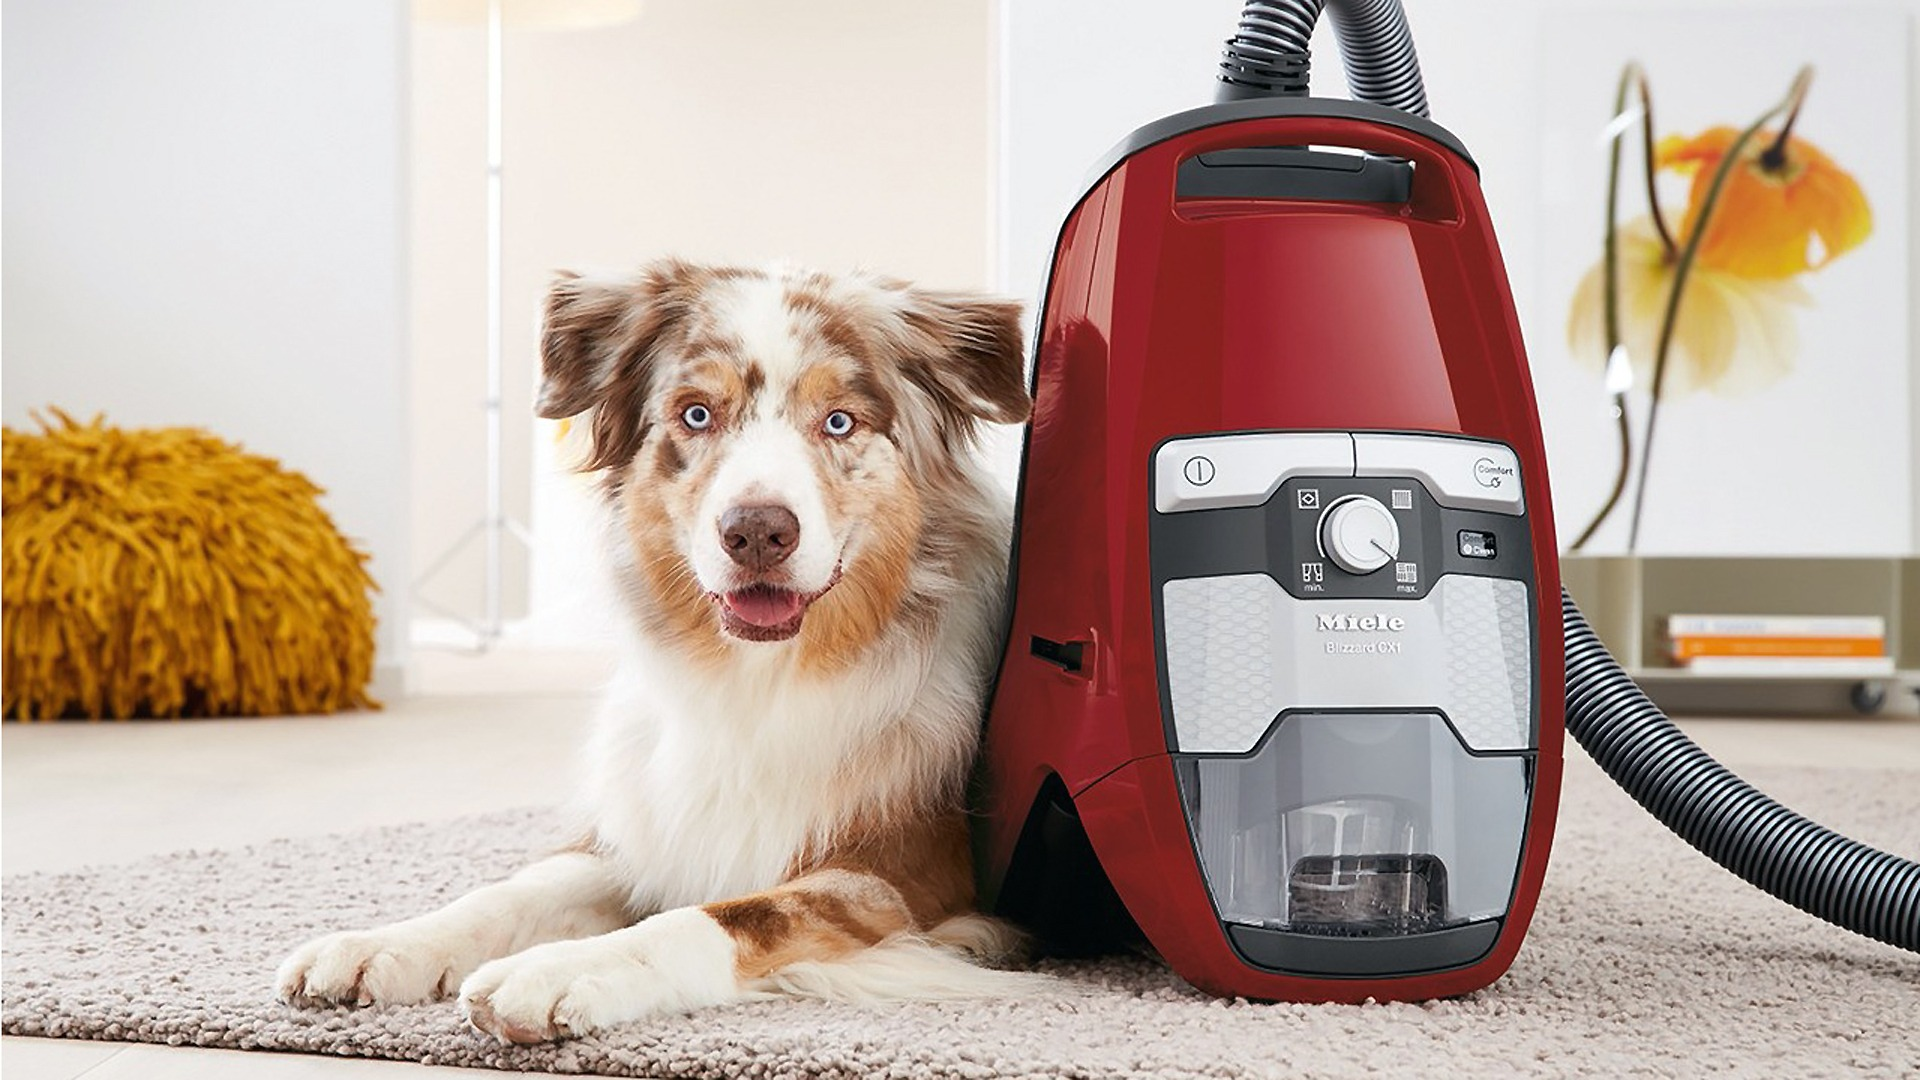 5 Best Vacuums For Pet Hair In 2019 Ranked Consumers Base